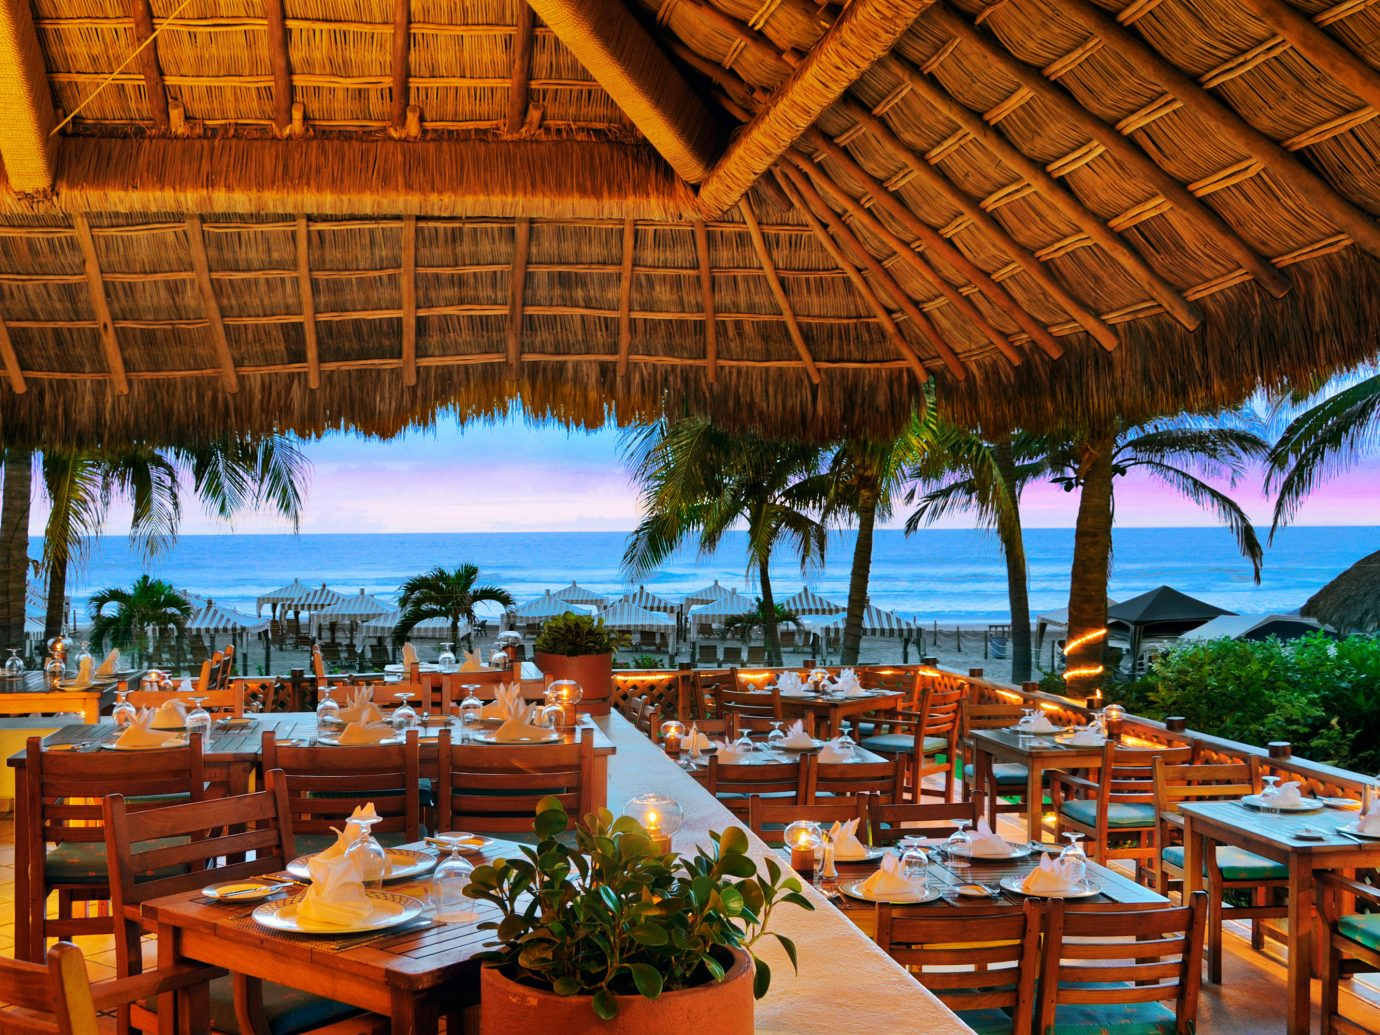 Budget table umbrella outdoor chair Resort restaurant vacation estate meal Dining caribbean set several dining room